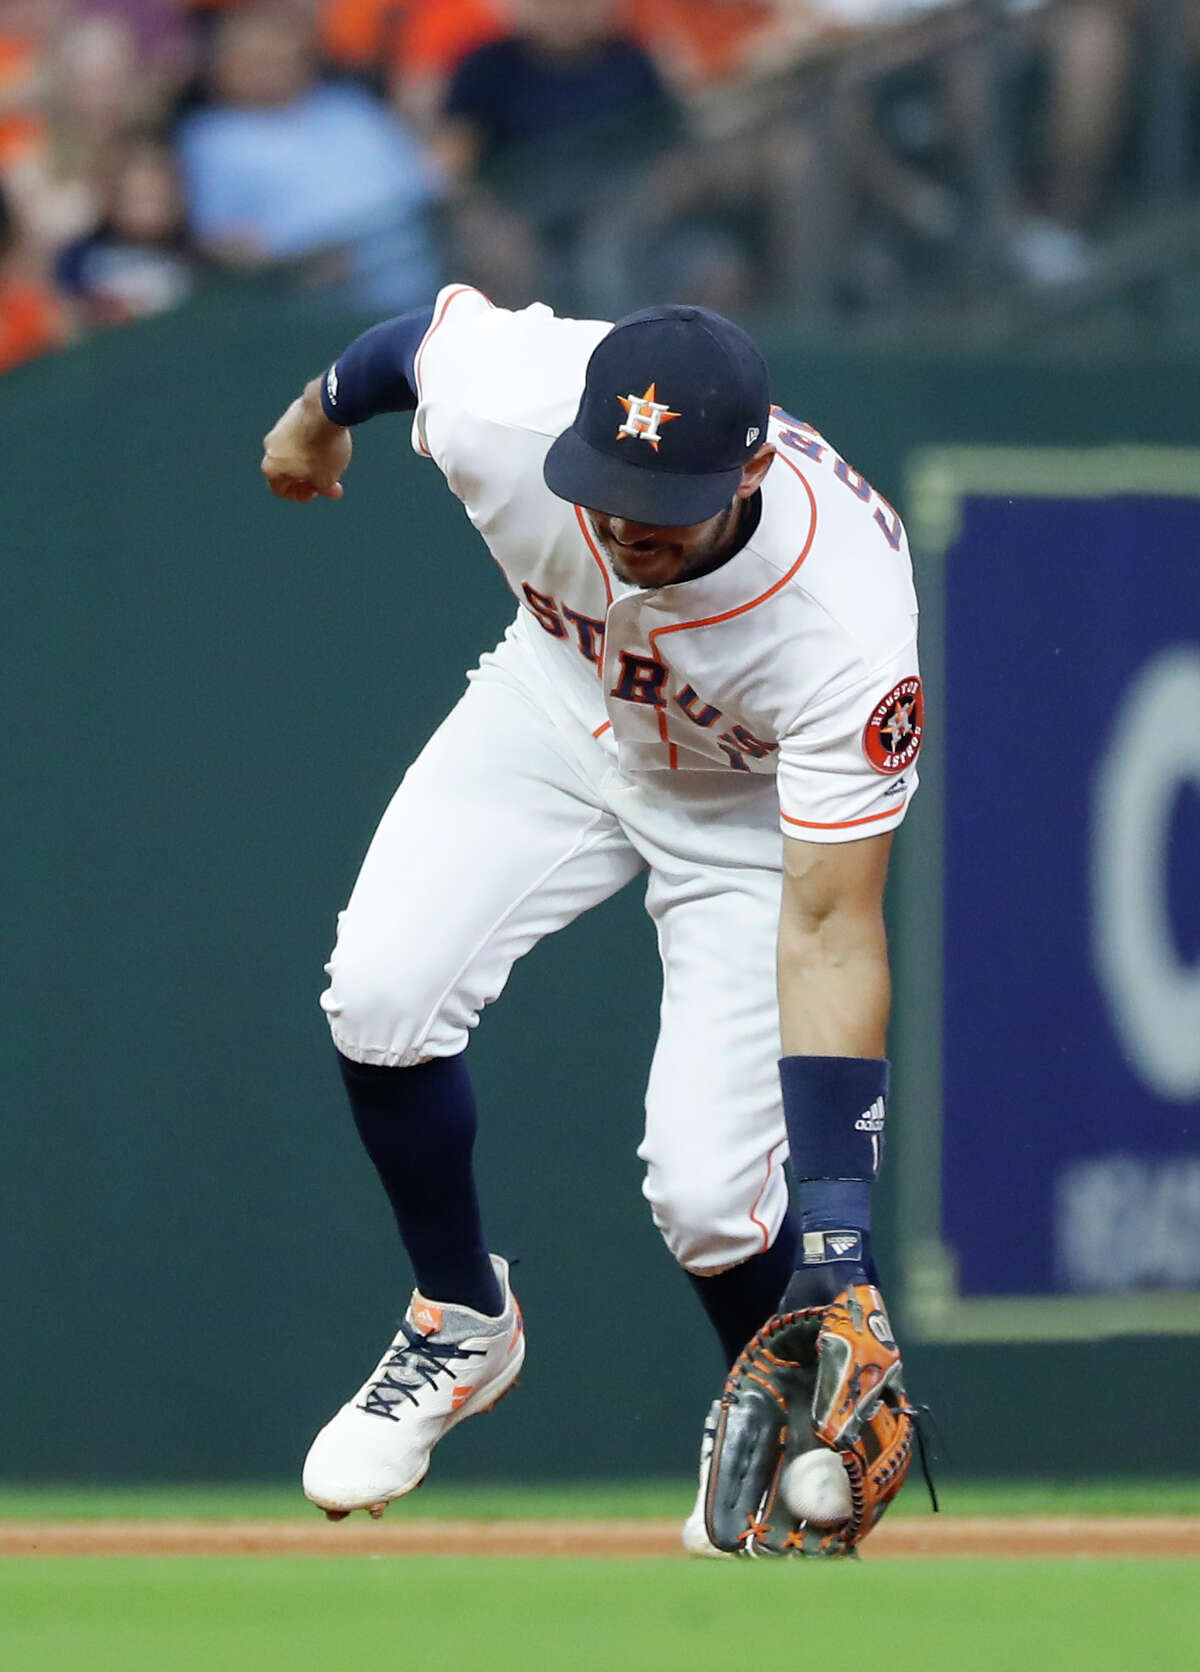 Houston Astros Carlos Correa (1) fields Seattle Mariners Nelson Cruz's ground out during the eighth inning of an MLB game at Minute Maid Park, Tuesday, September 18, 2018, in Houston.